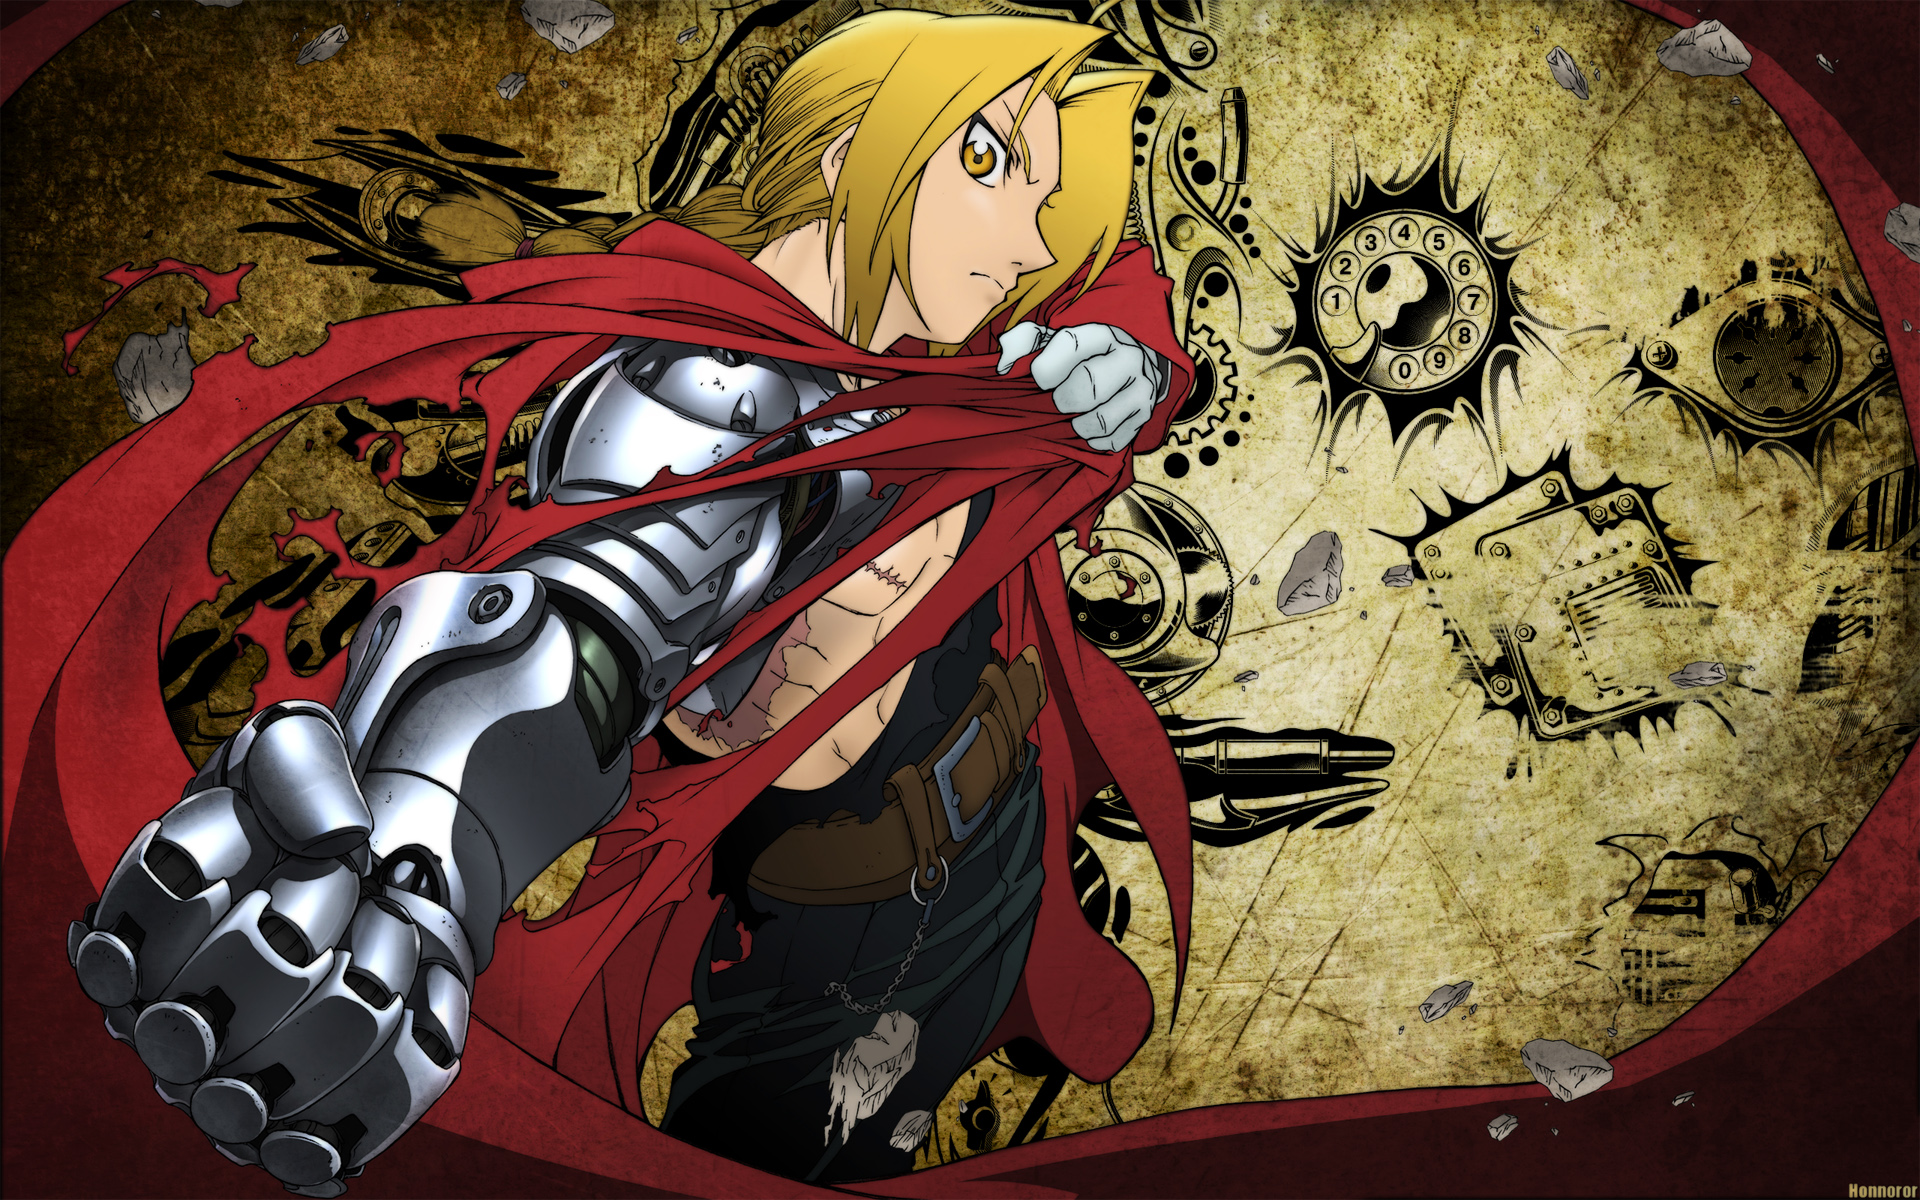 Full Metal Alchemist Wallpaper 1920x1200 Full HD Wallpapers 1920x1200